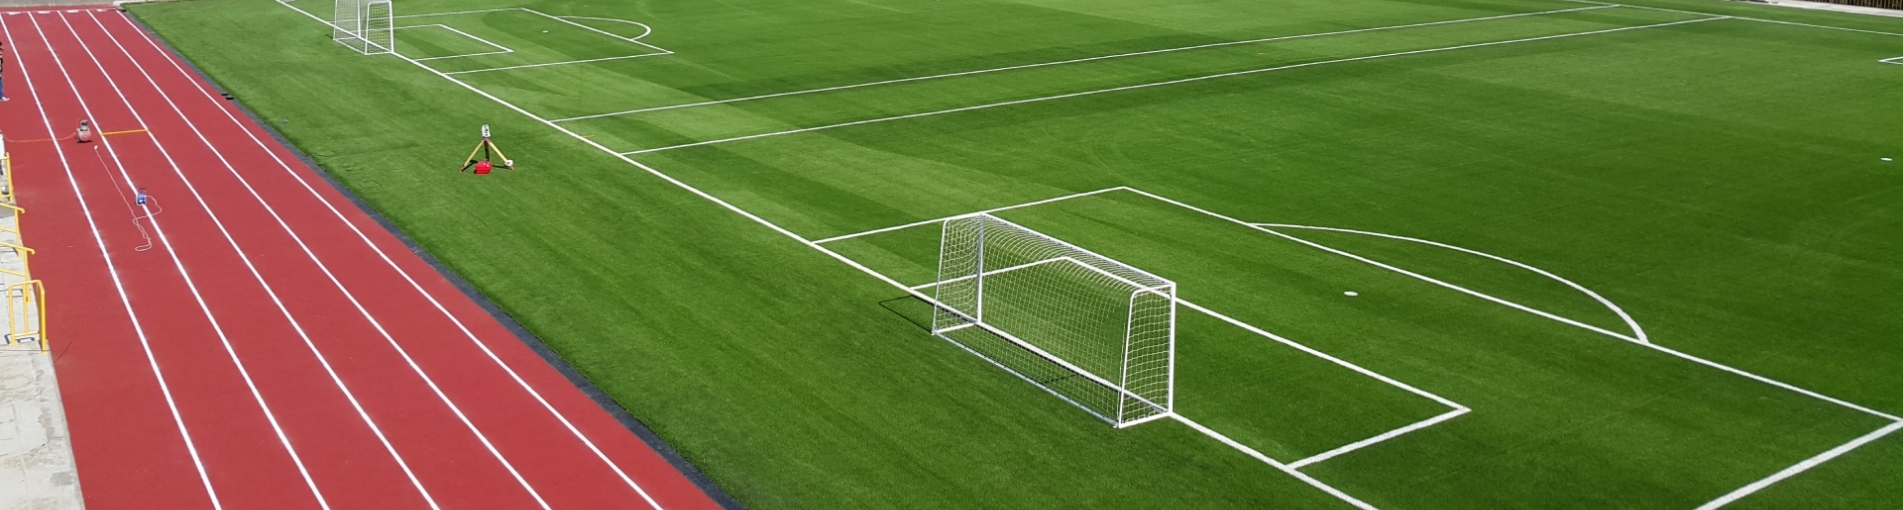 For Outdoor Astro Pitch Construction Cost